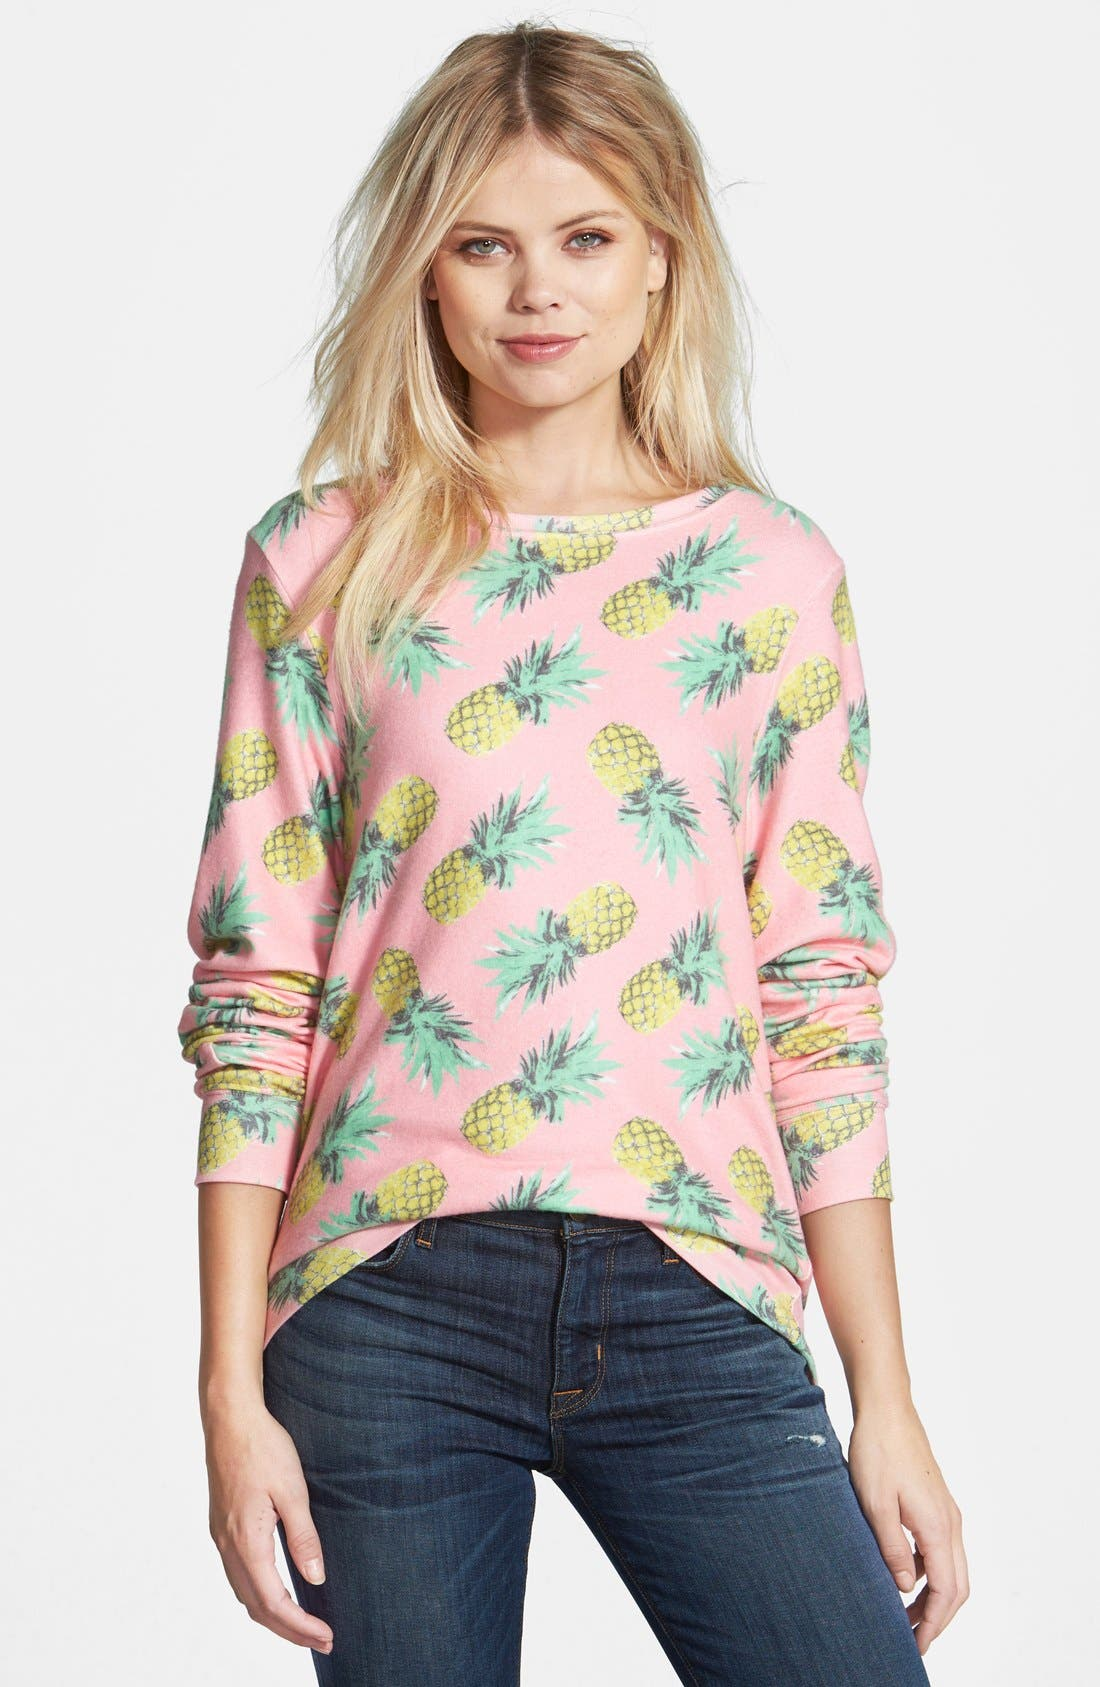 Wildfox 'Pineapple Palace' Sweatshirt